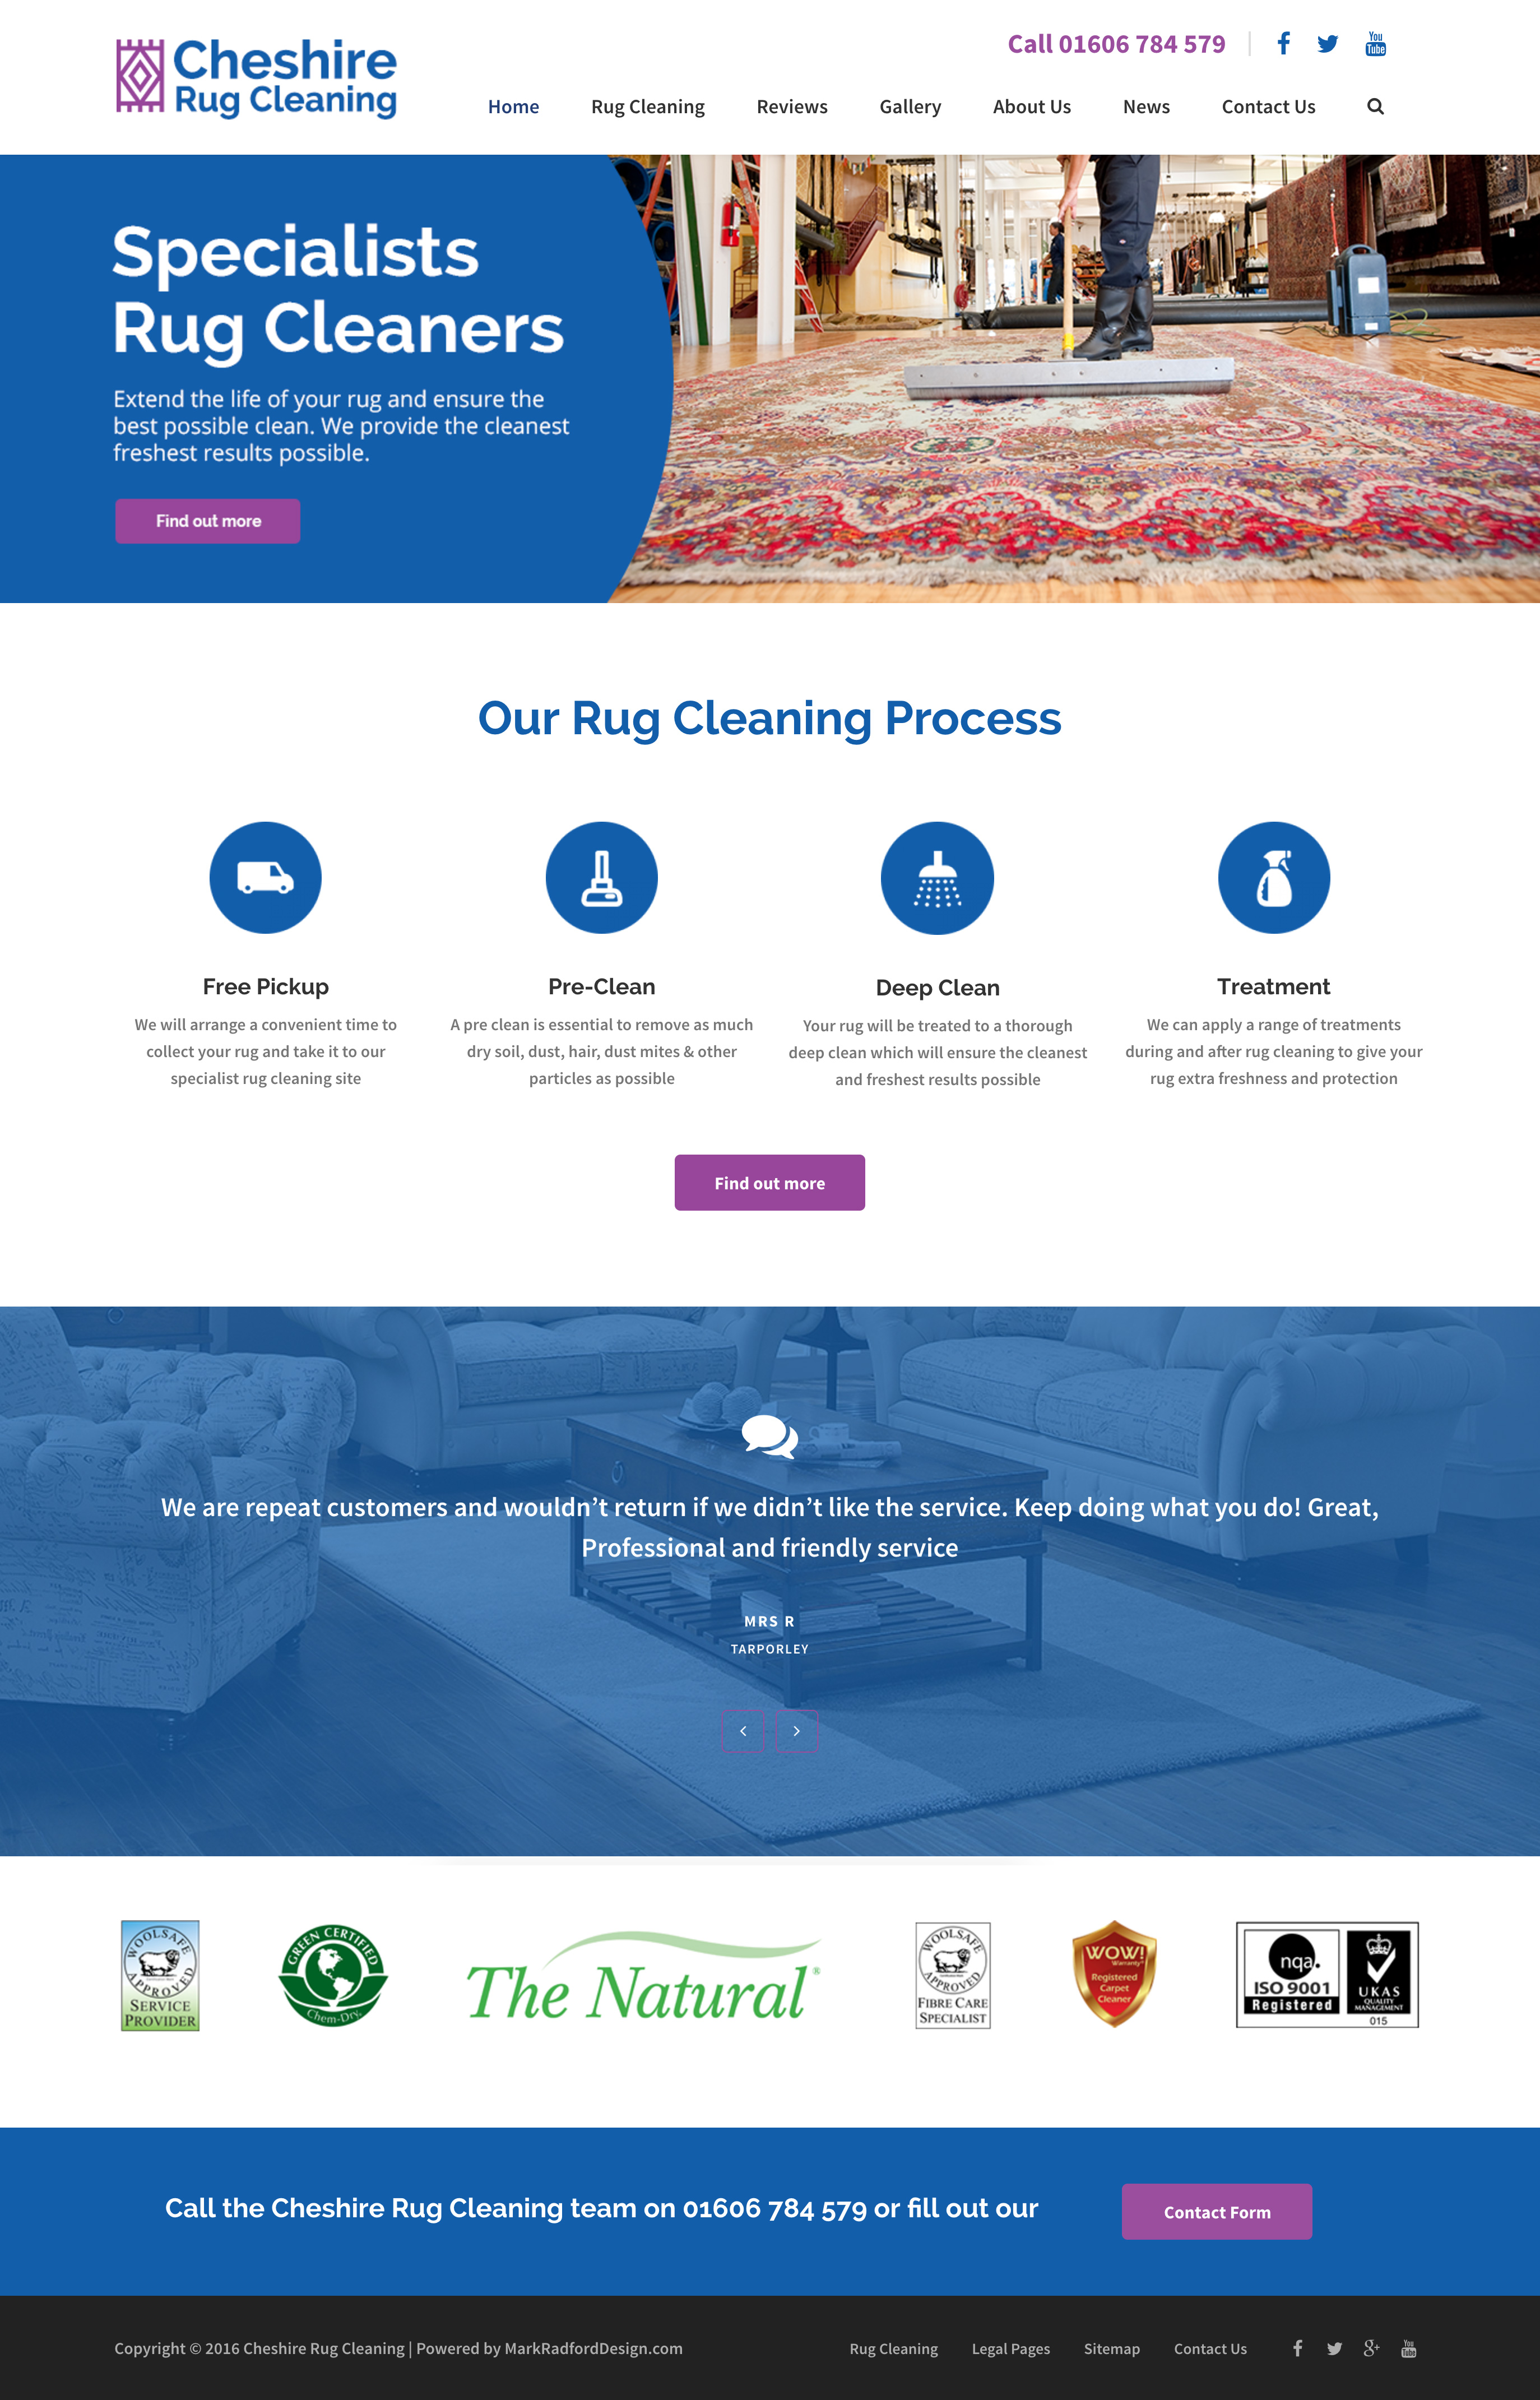 cheshire-rug-cleaning